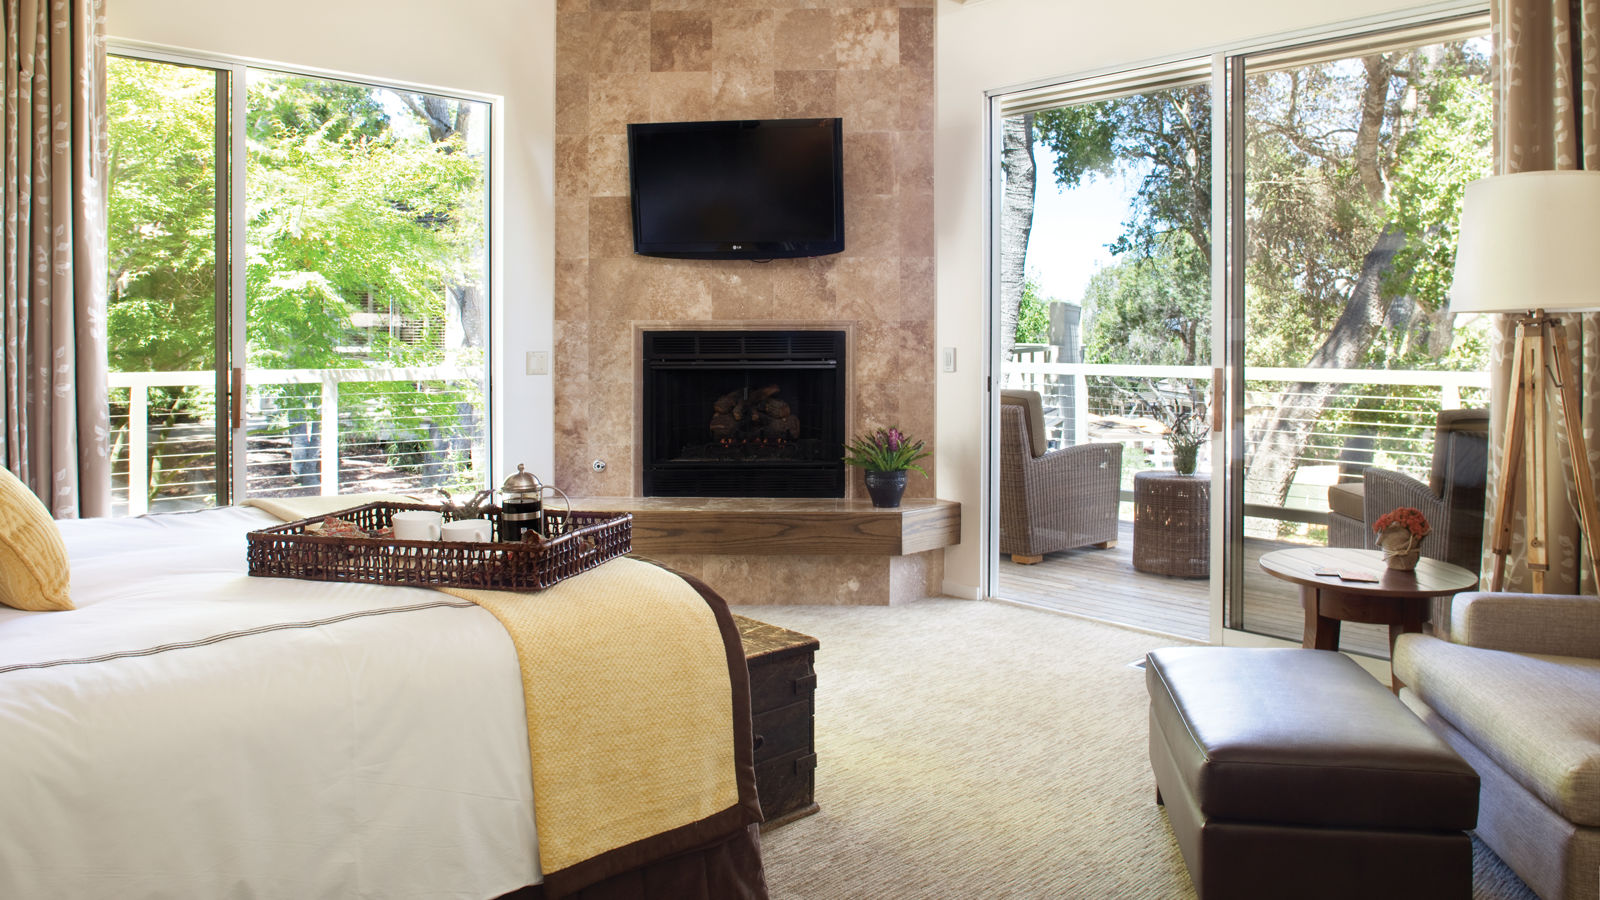 Carmel Valley Ranch_Accommodations_Garland Suite_Bedroom